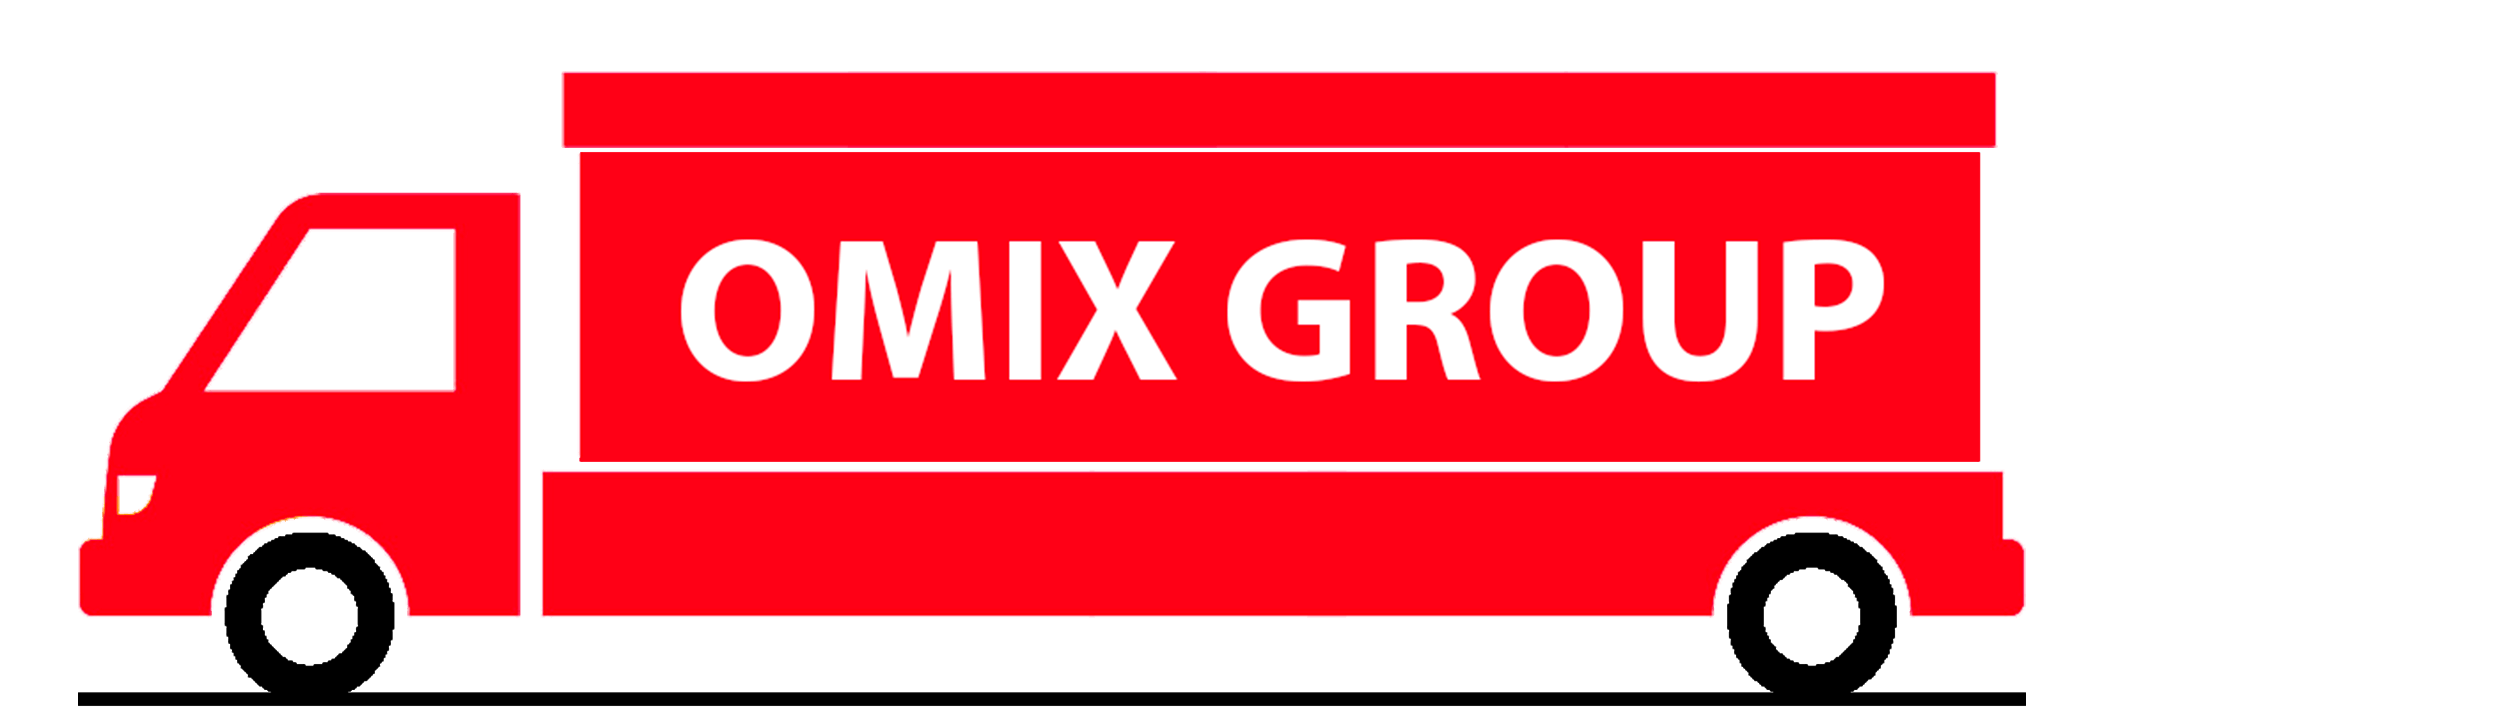 omix.group